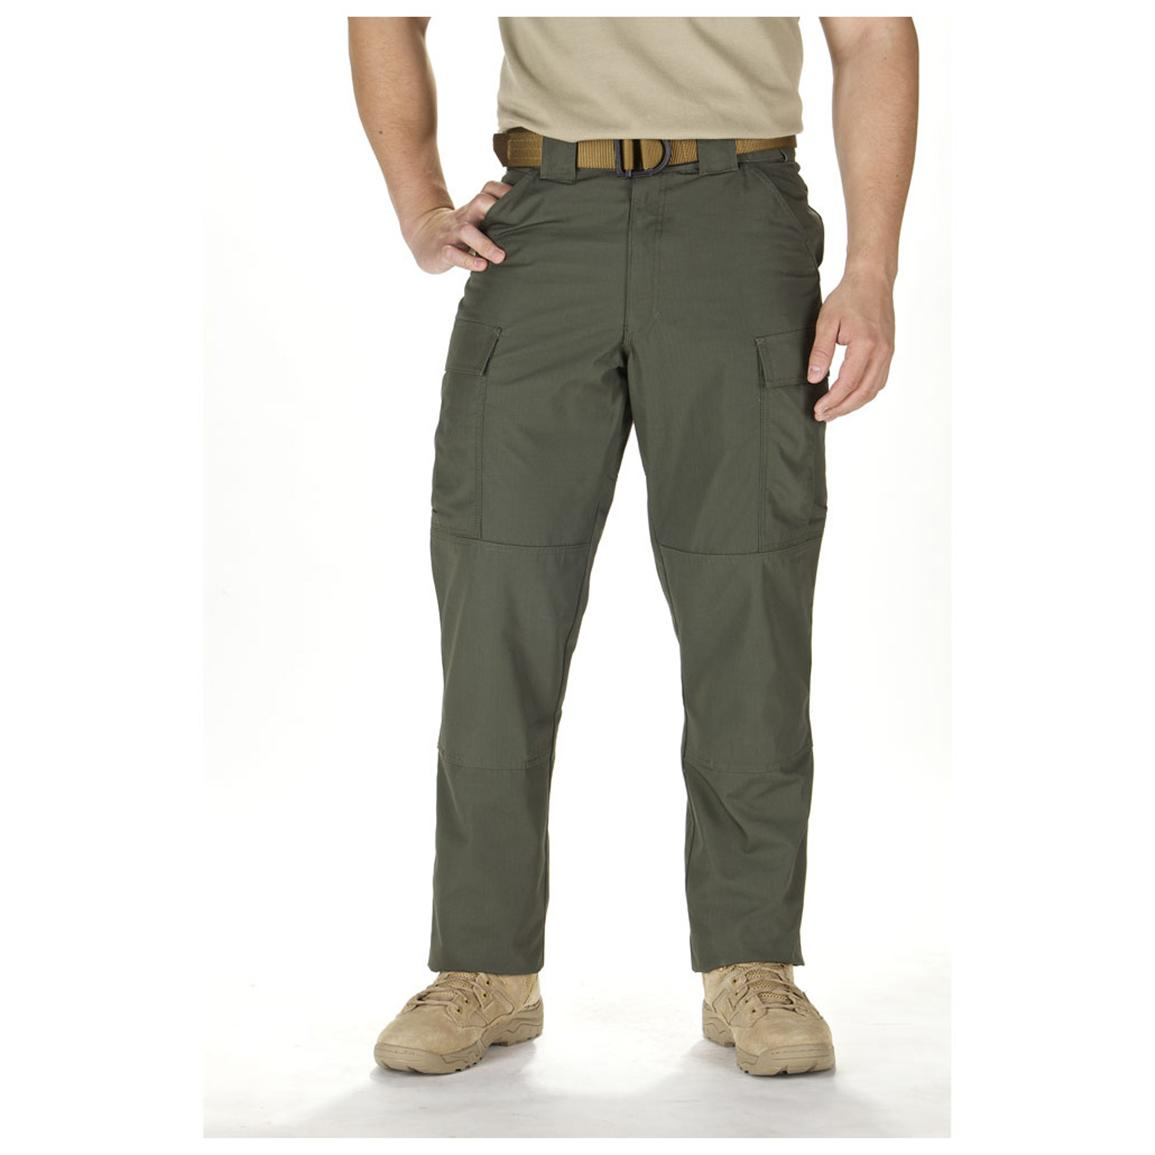 Men's 5.11 Tactical® Twill TDU® Pants, TDU Green